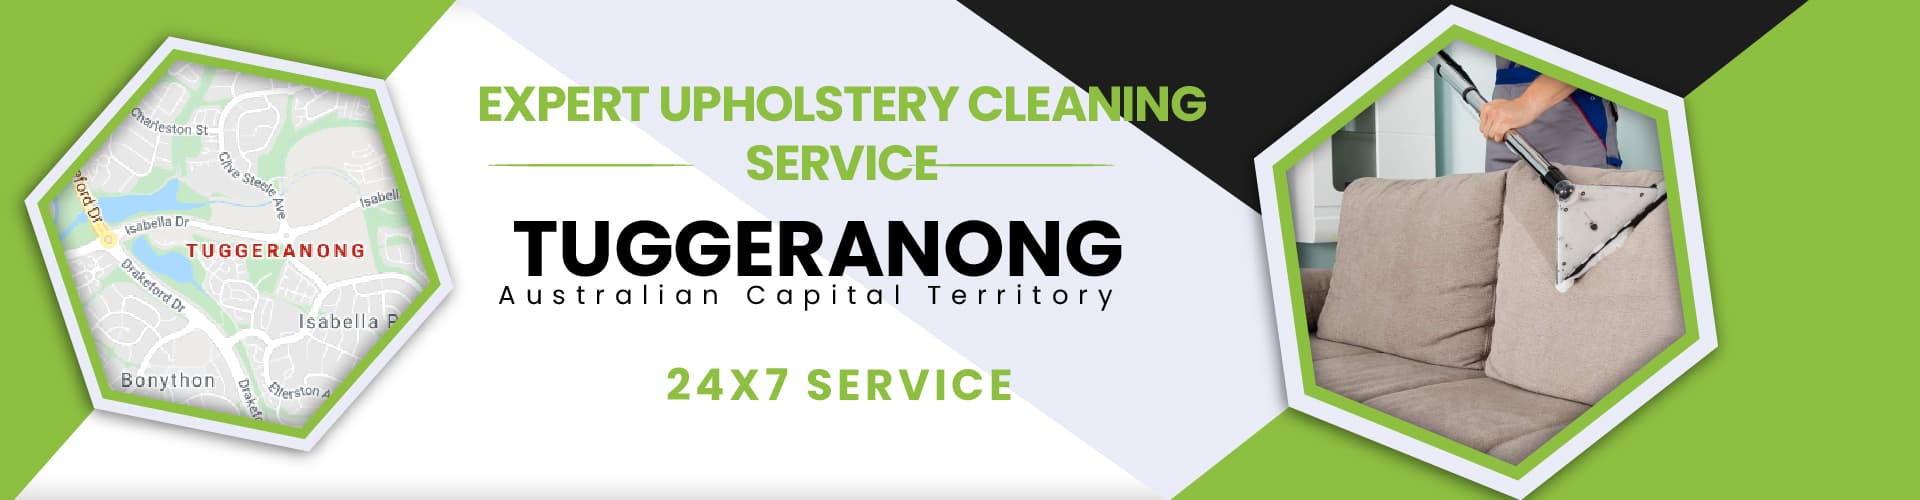 Upholstery Cleaning Tuggeranong